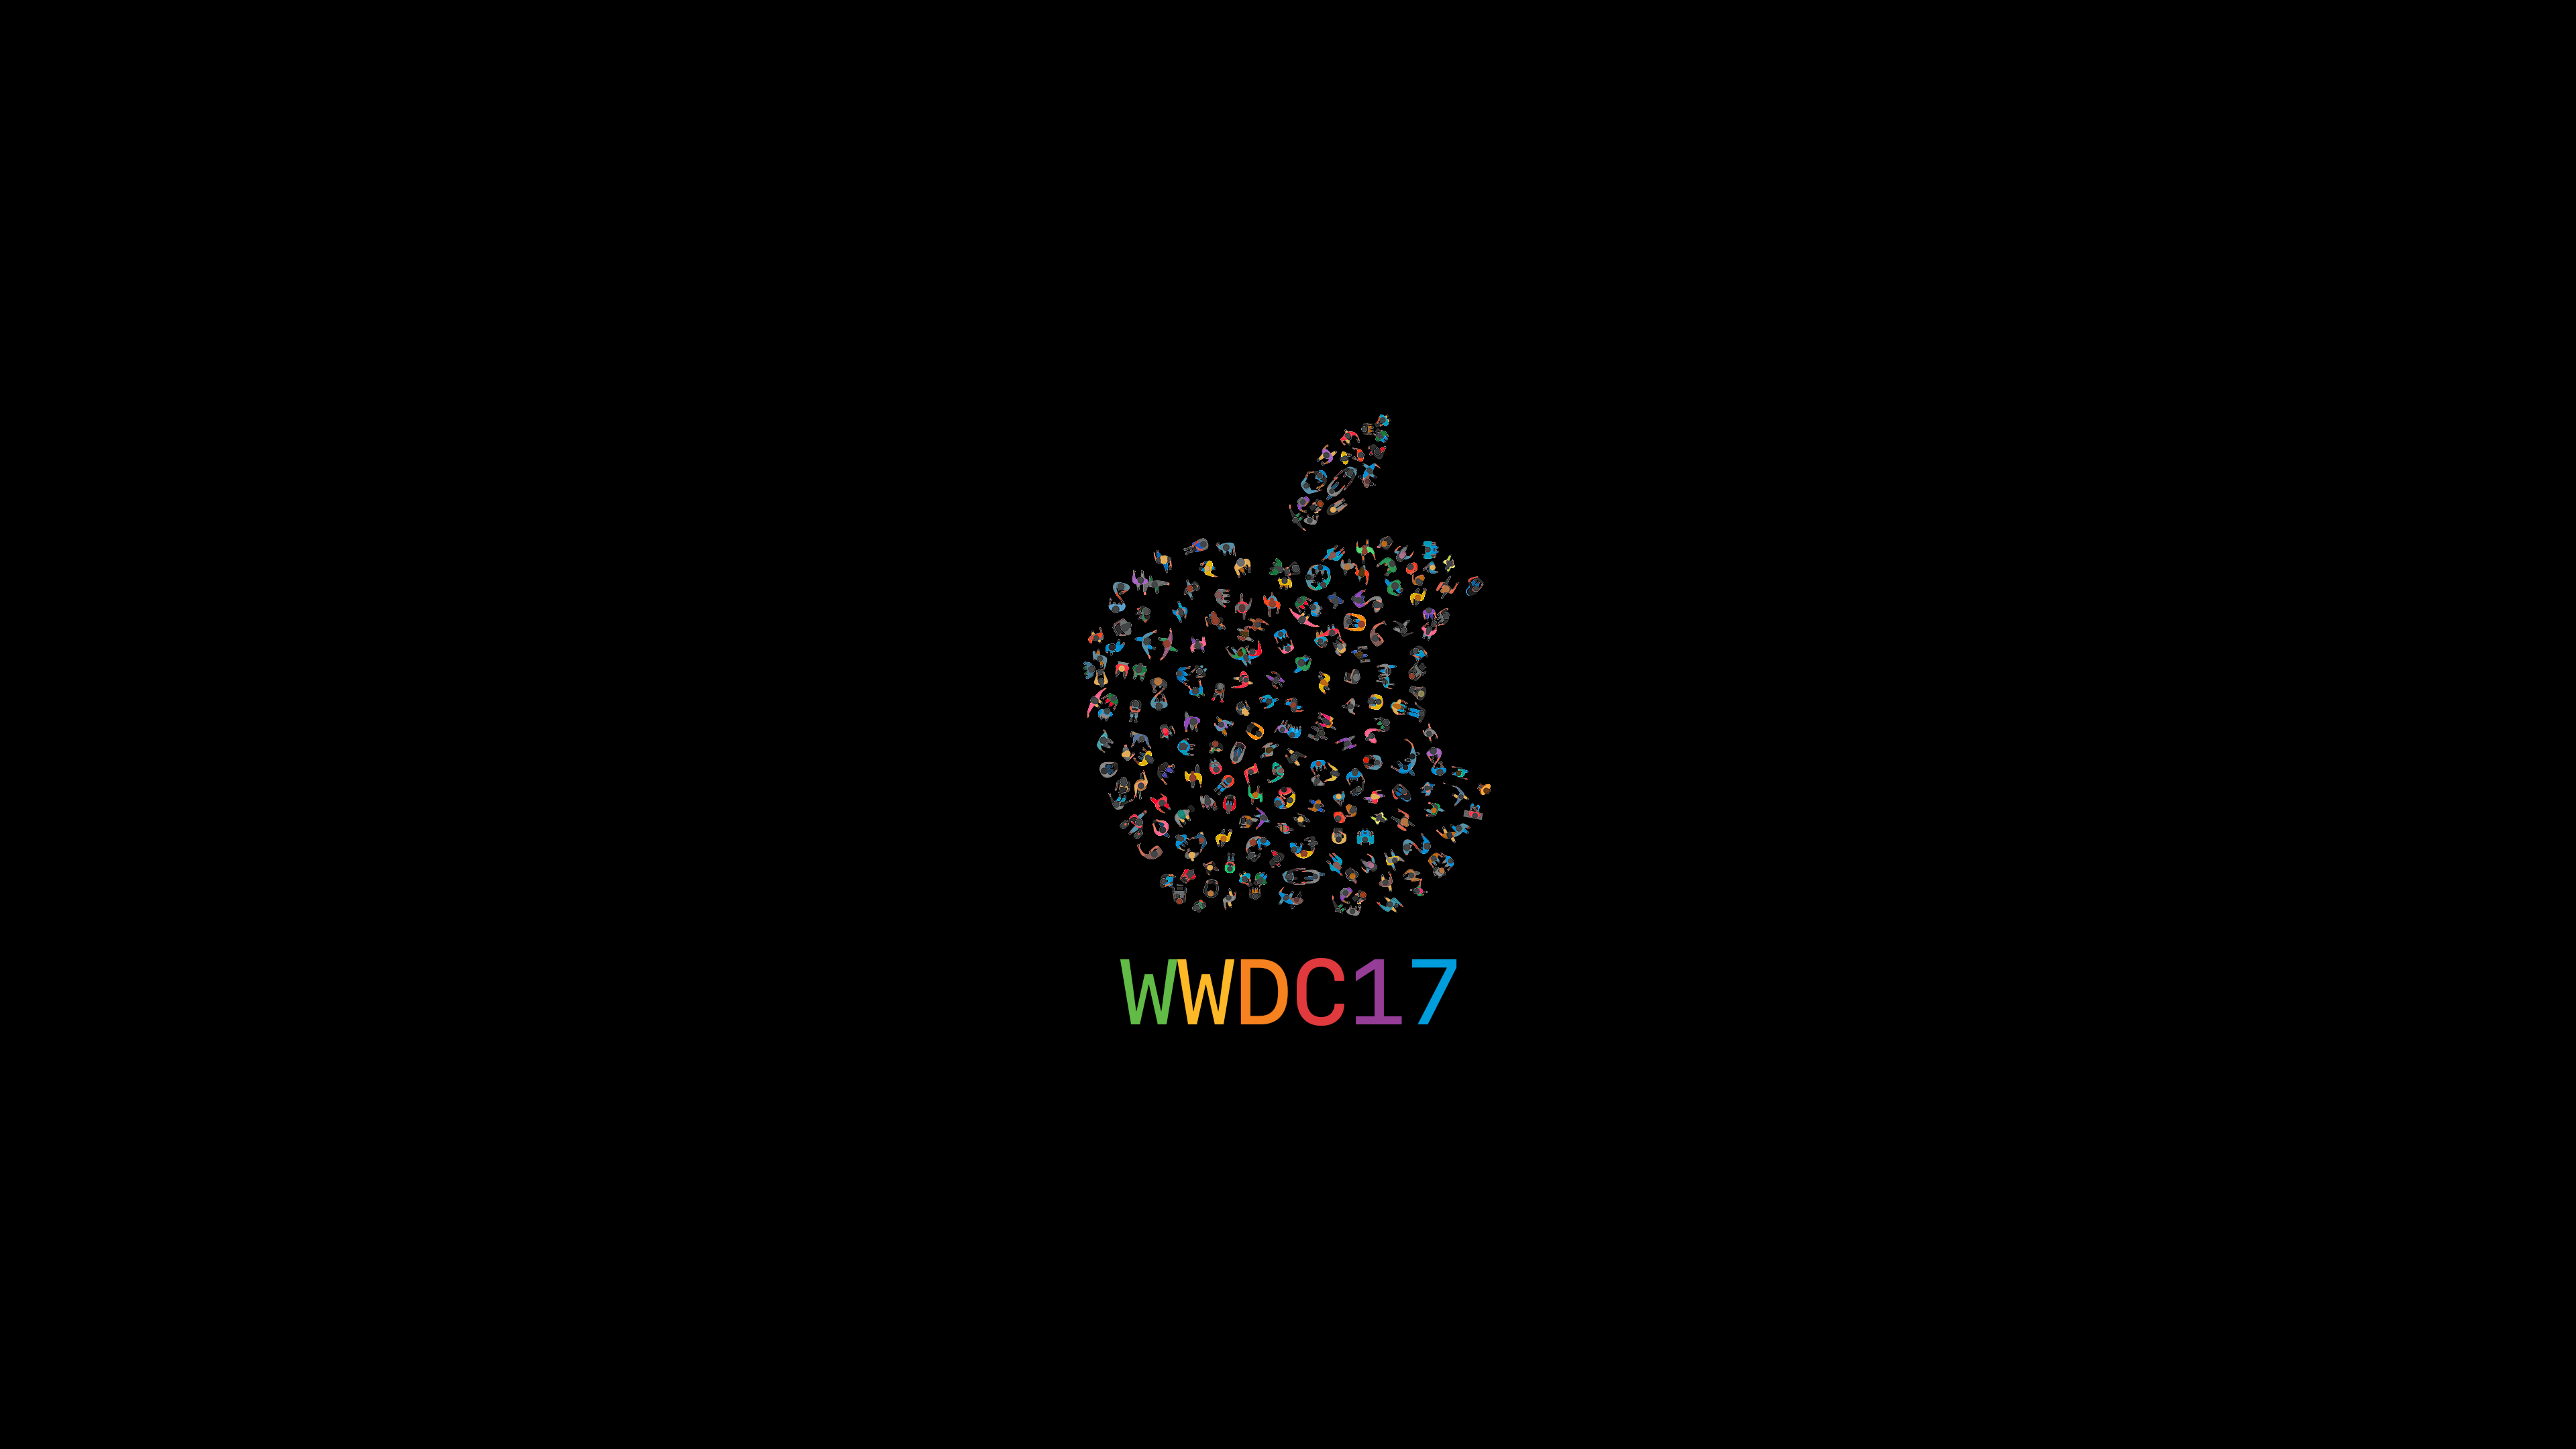 WWDC 2017 Wallpapers